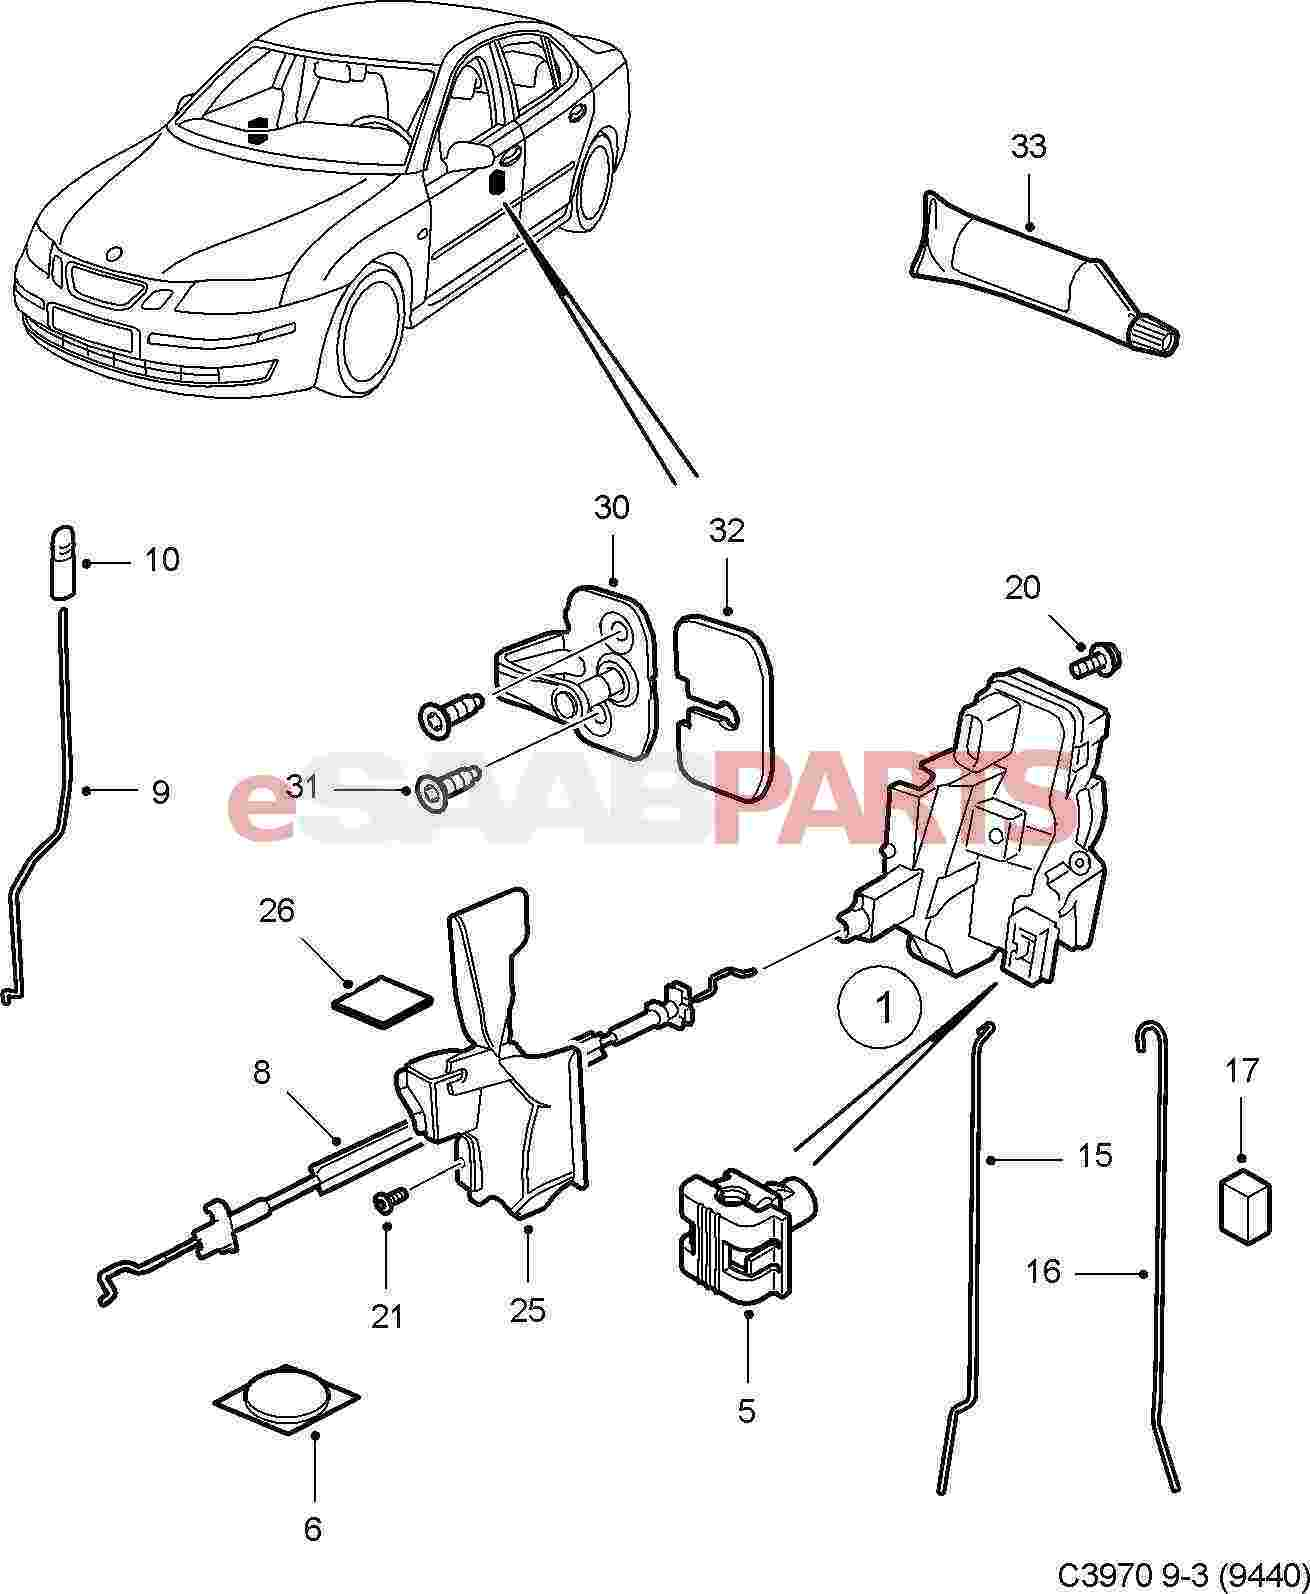 12785564 saab door handle cable front 4d 5d genuine saab rh esaabparts com Saab 900 Engine Diagram 1999 Saab 9 3 Amplifier Wiring